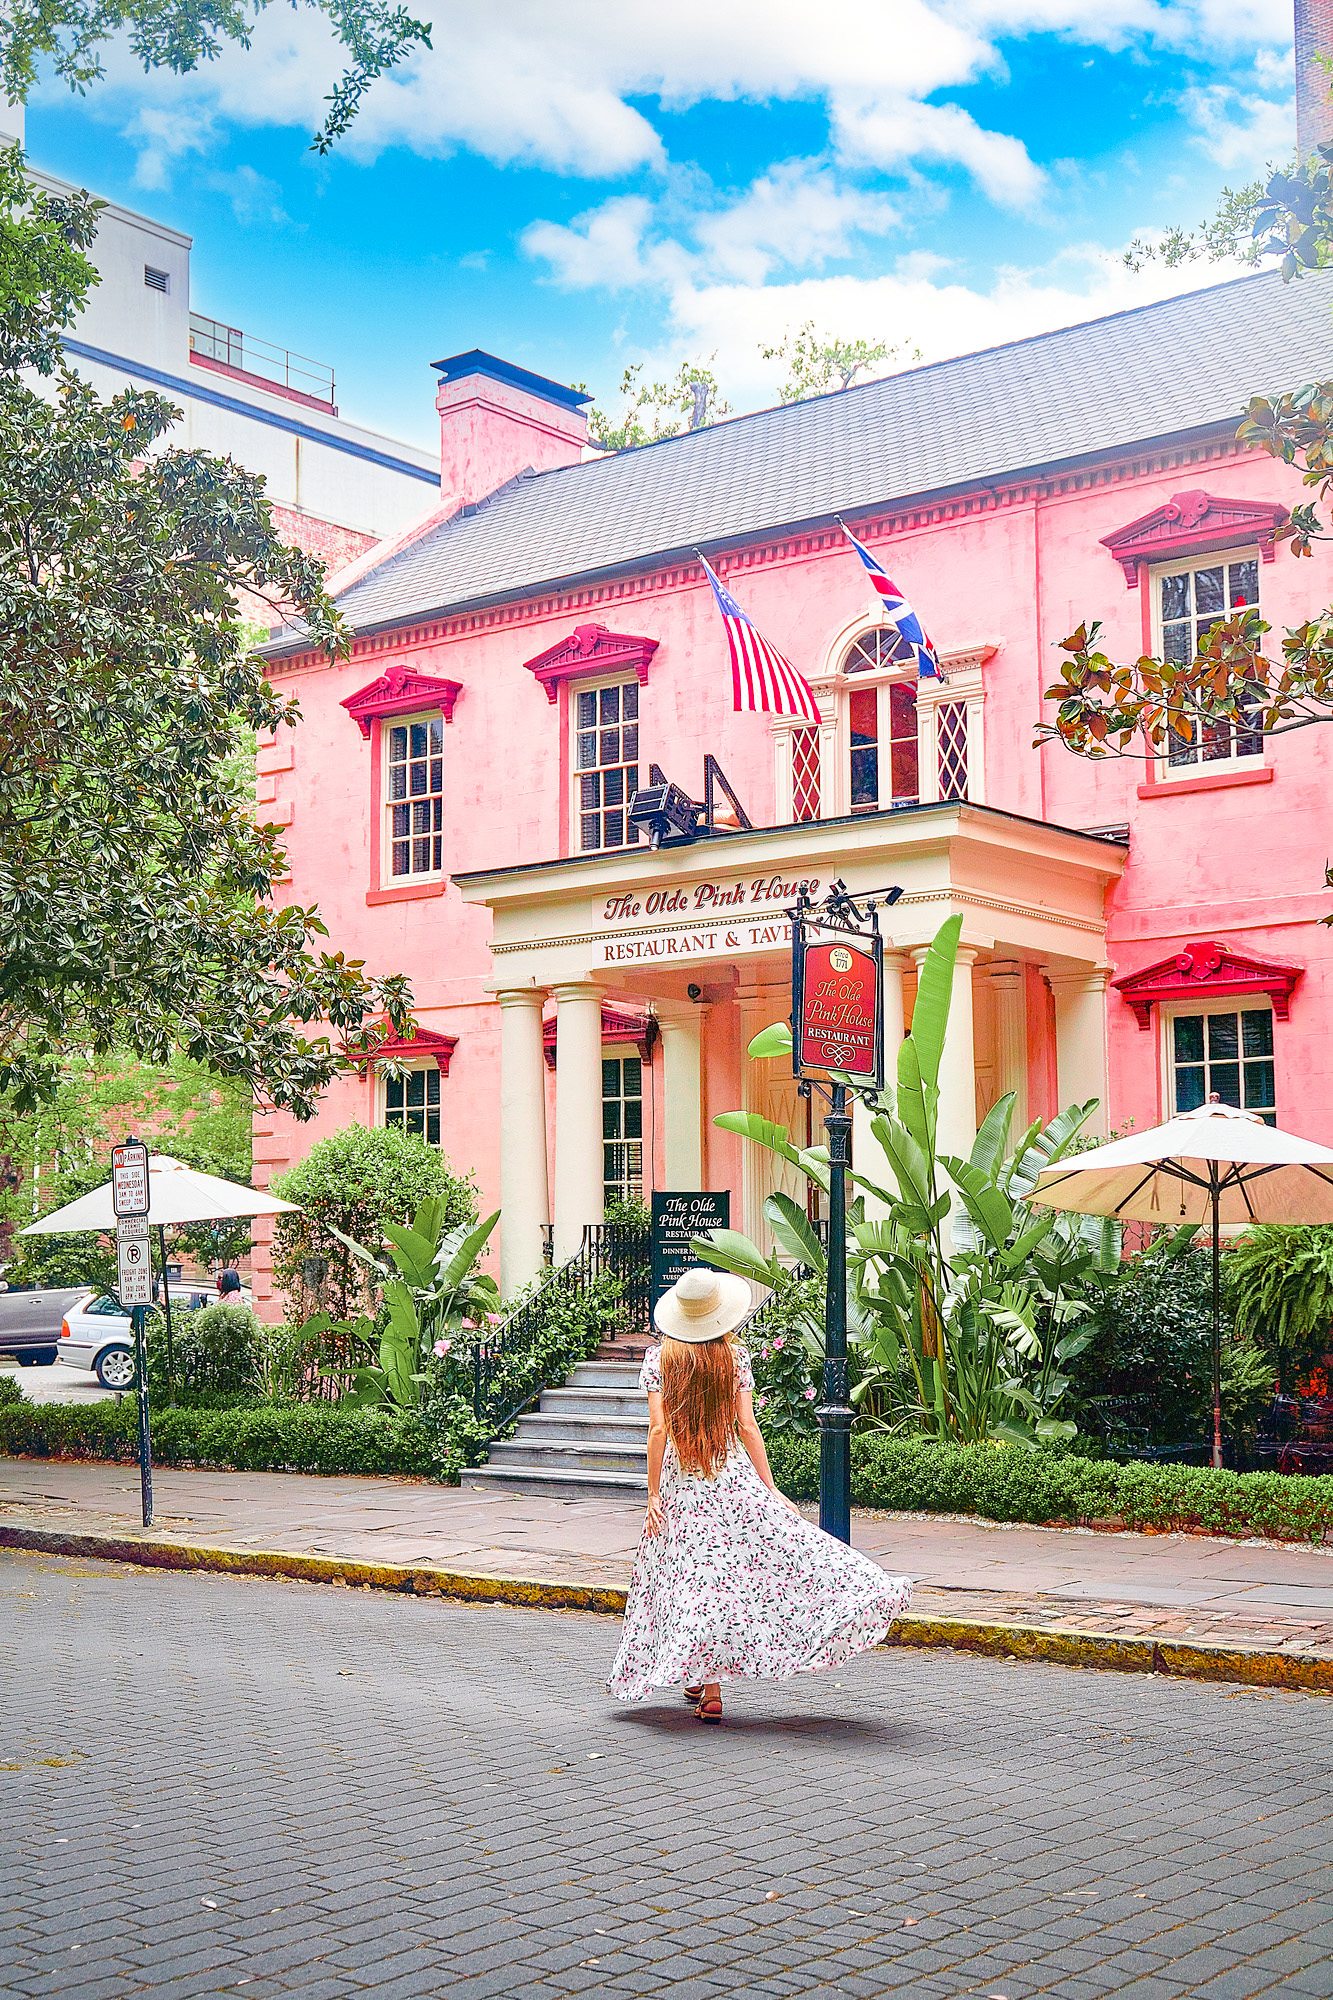 A woman standing on a cobblestone street in a long floral dress with her long hair down and a white sun hat. She is standing in front of The Olde Pink House, a historic building that is now a restaurant and tavern. It is a large building that is kind of the color of pepto bismol. The windows have a darker pink trim. There are umbrellas and lots of greenery in front of the building. A beautiful Savannah photo spots.